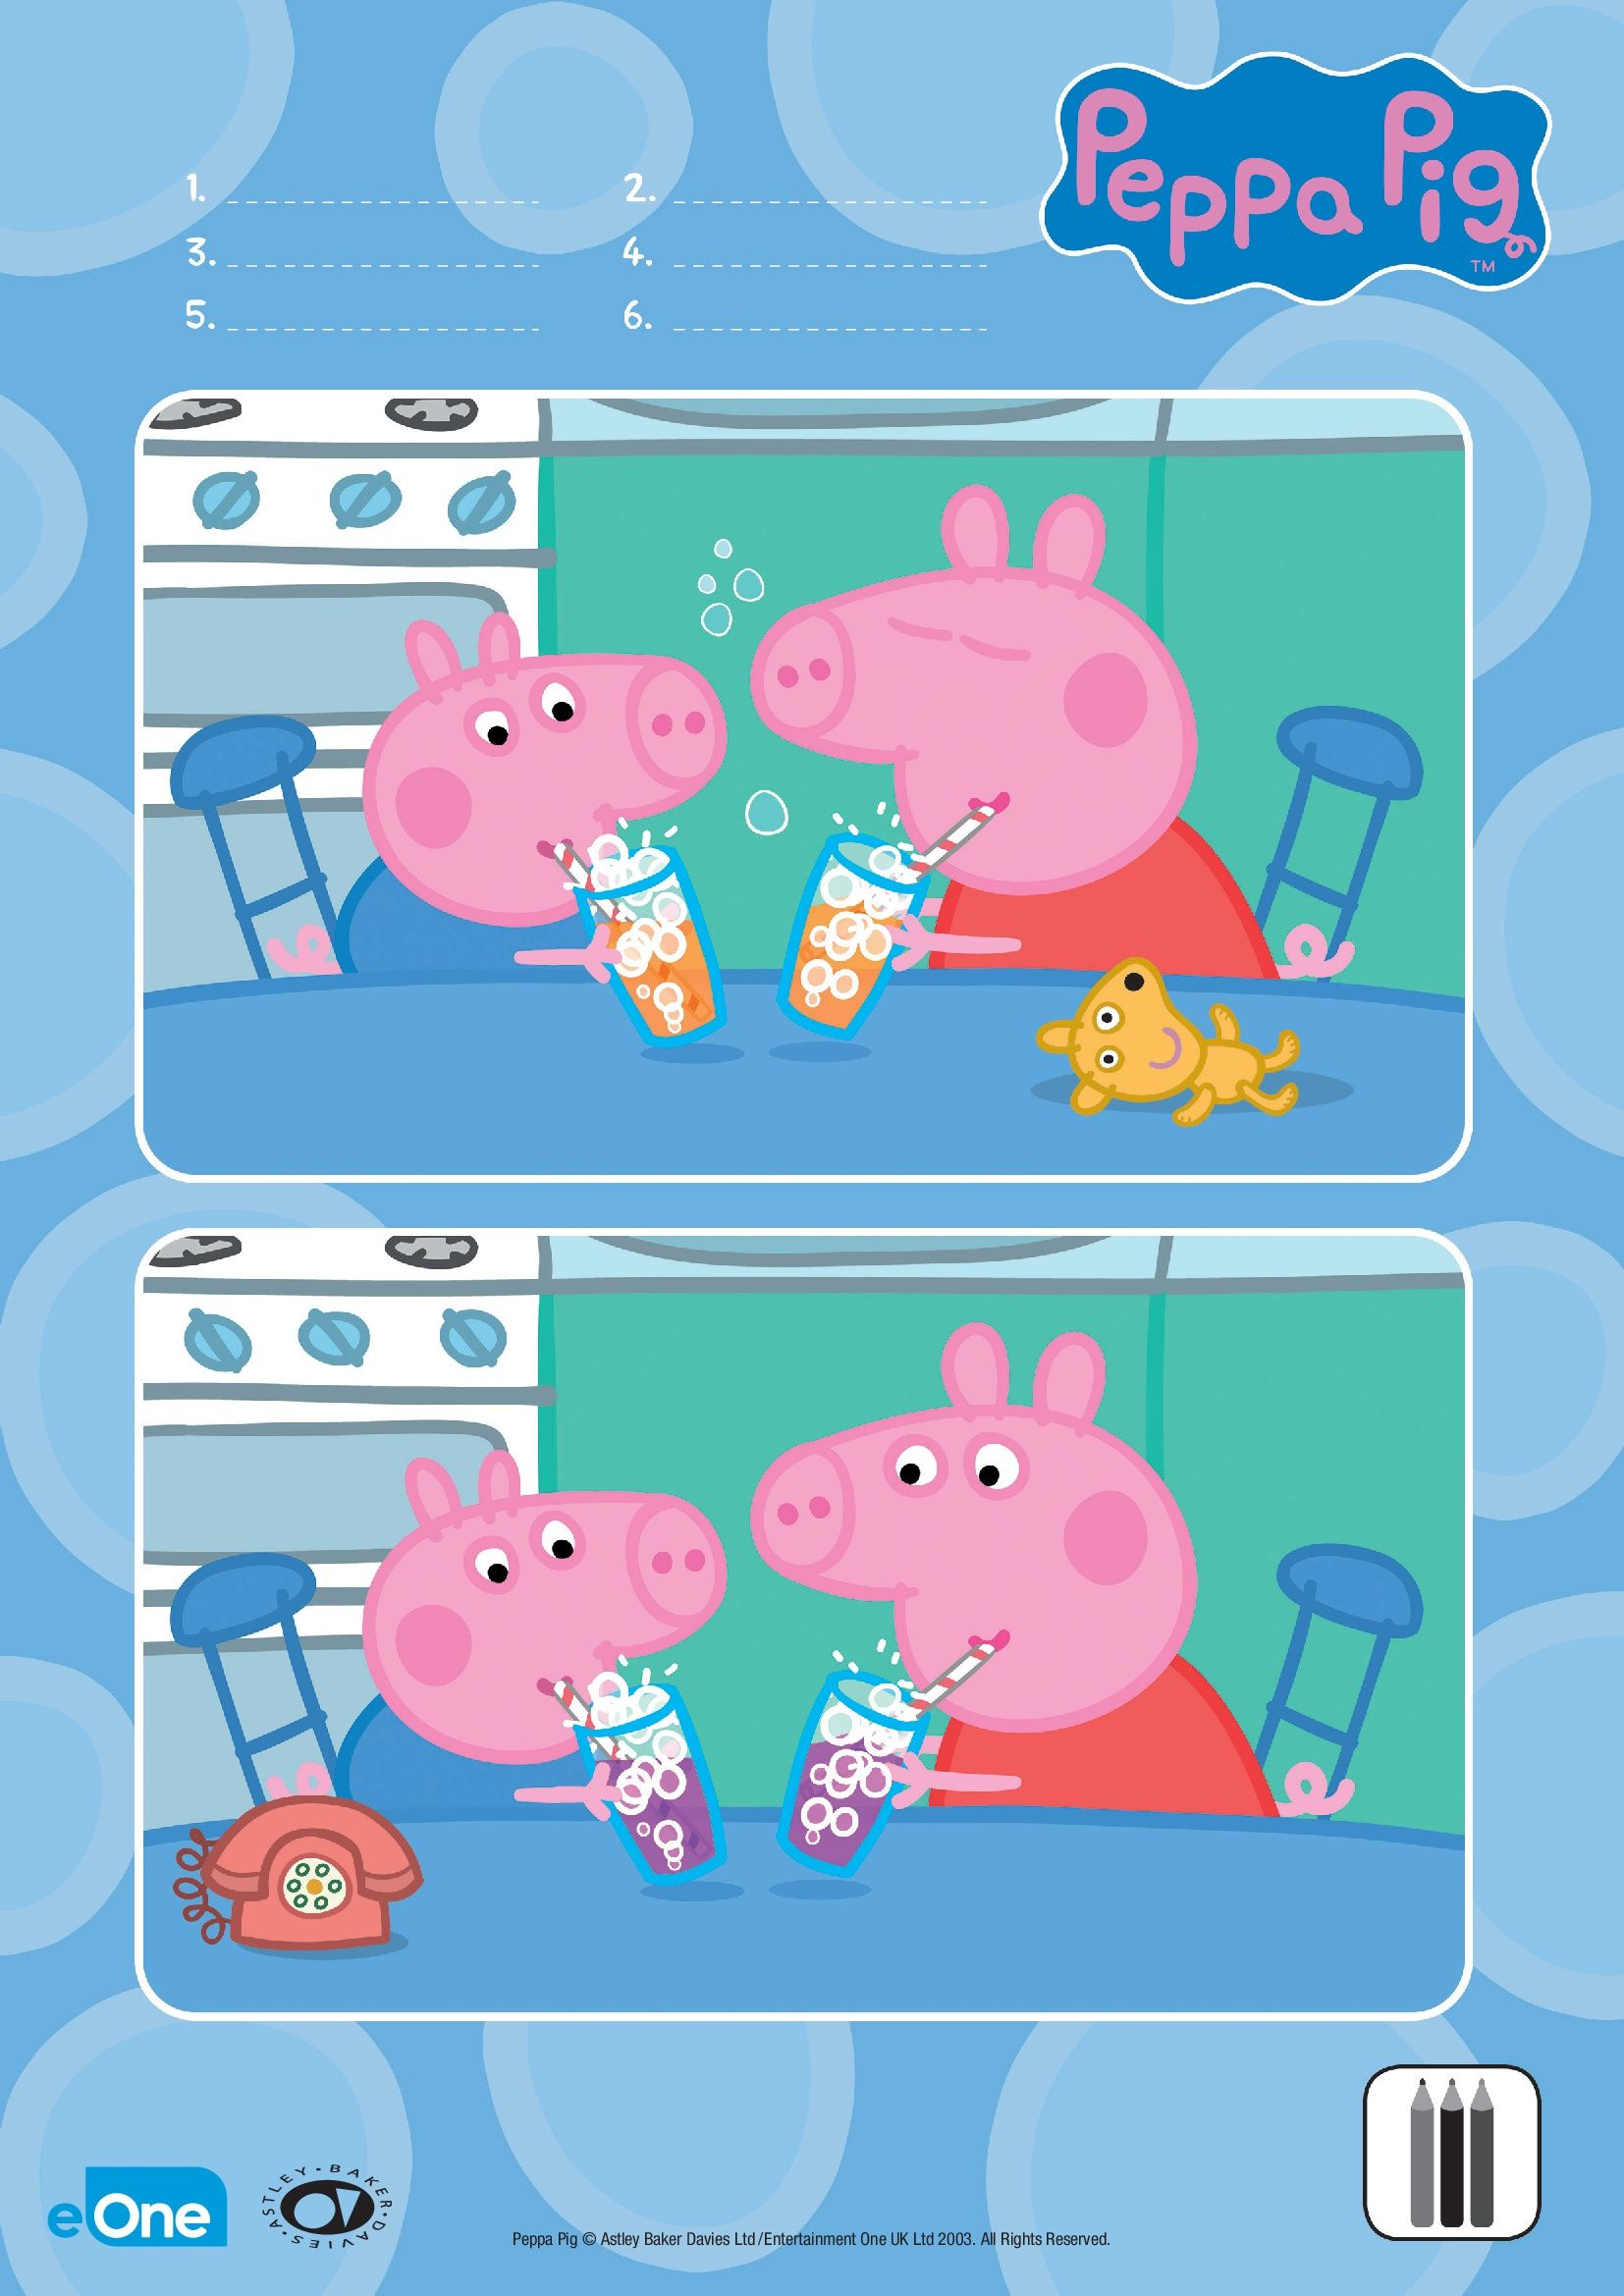 Oink Oink Your Little One Can Help Peppa And Her Brother George Spot The Difference Between The Pig Crafts Fun Worksheets For Kids Toddler Learning Activities [ 2339 x 1654 Pixel ]